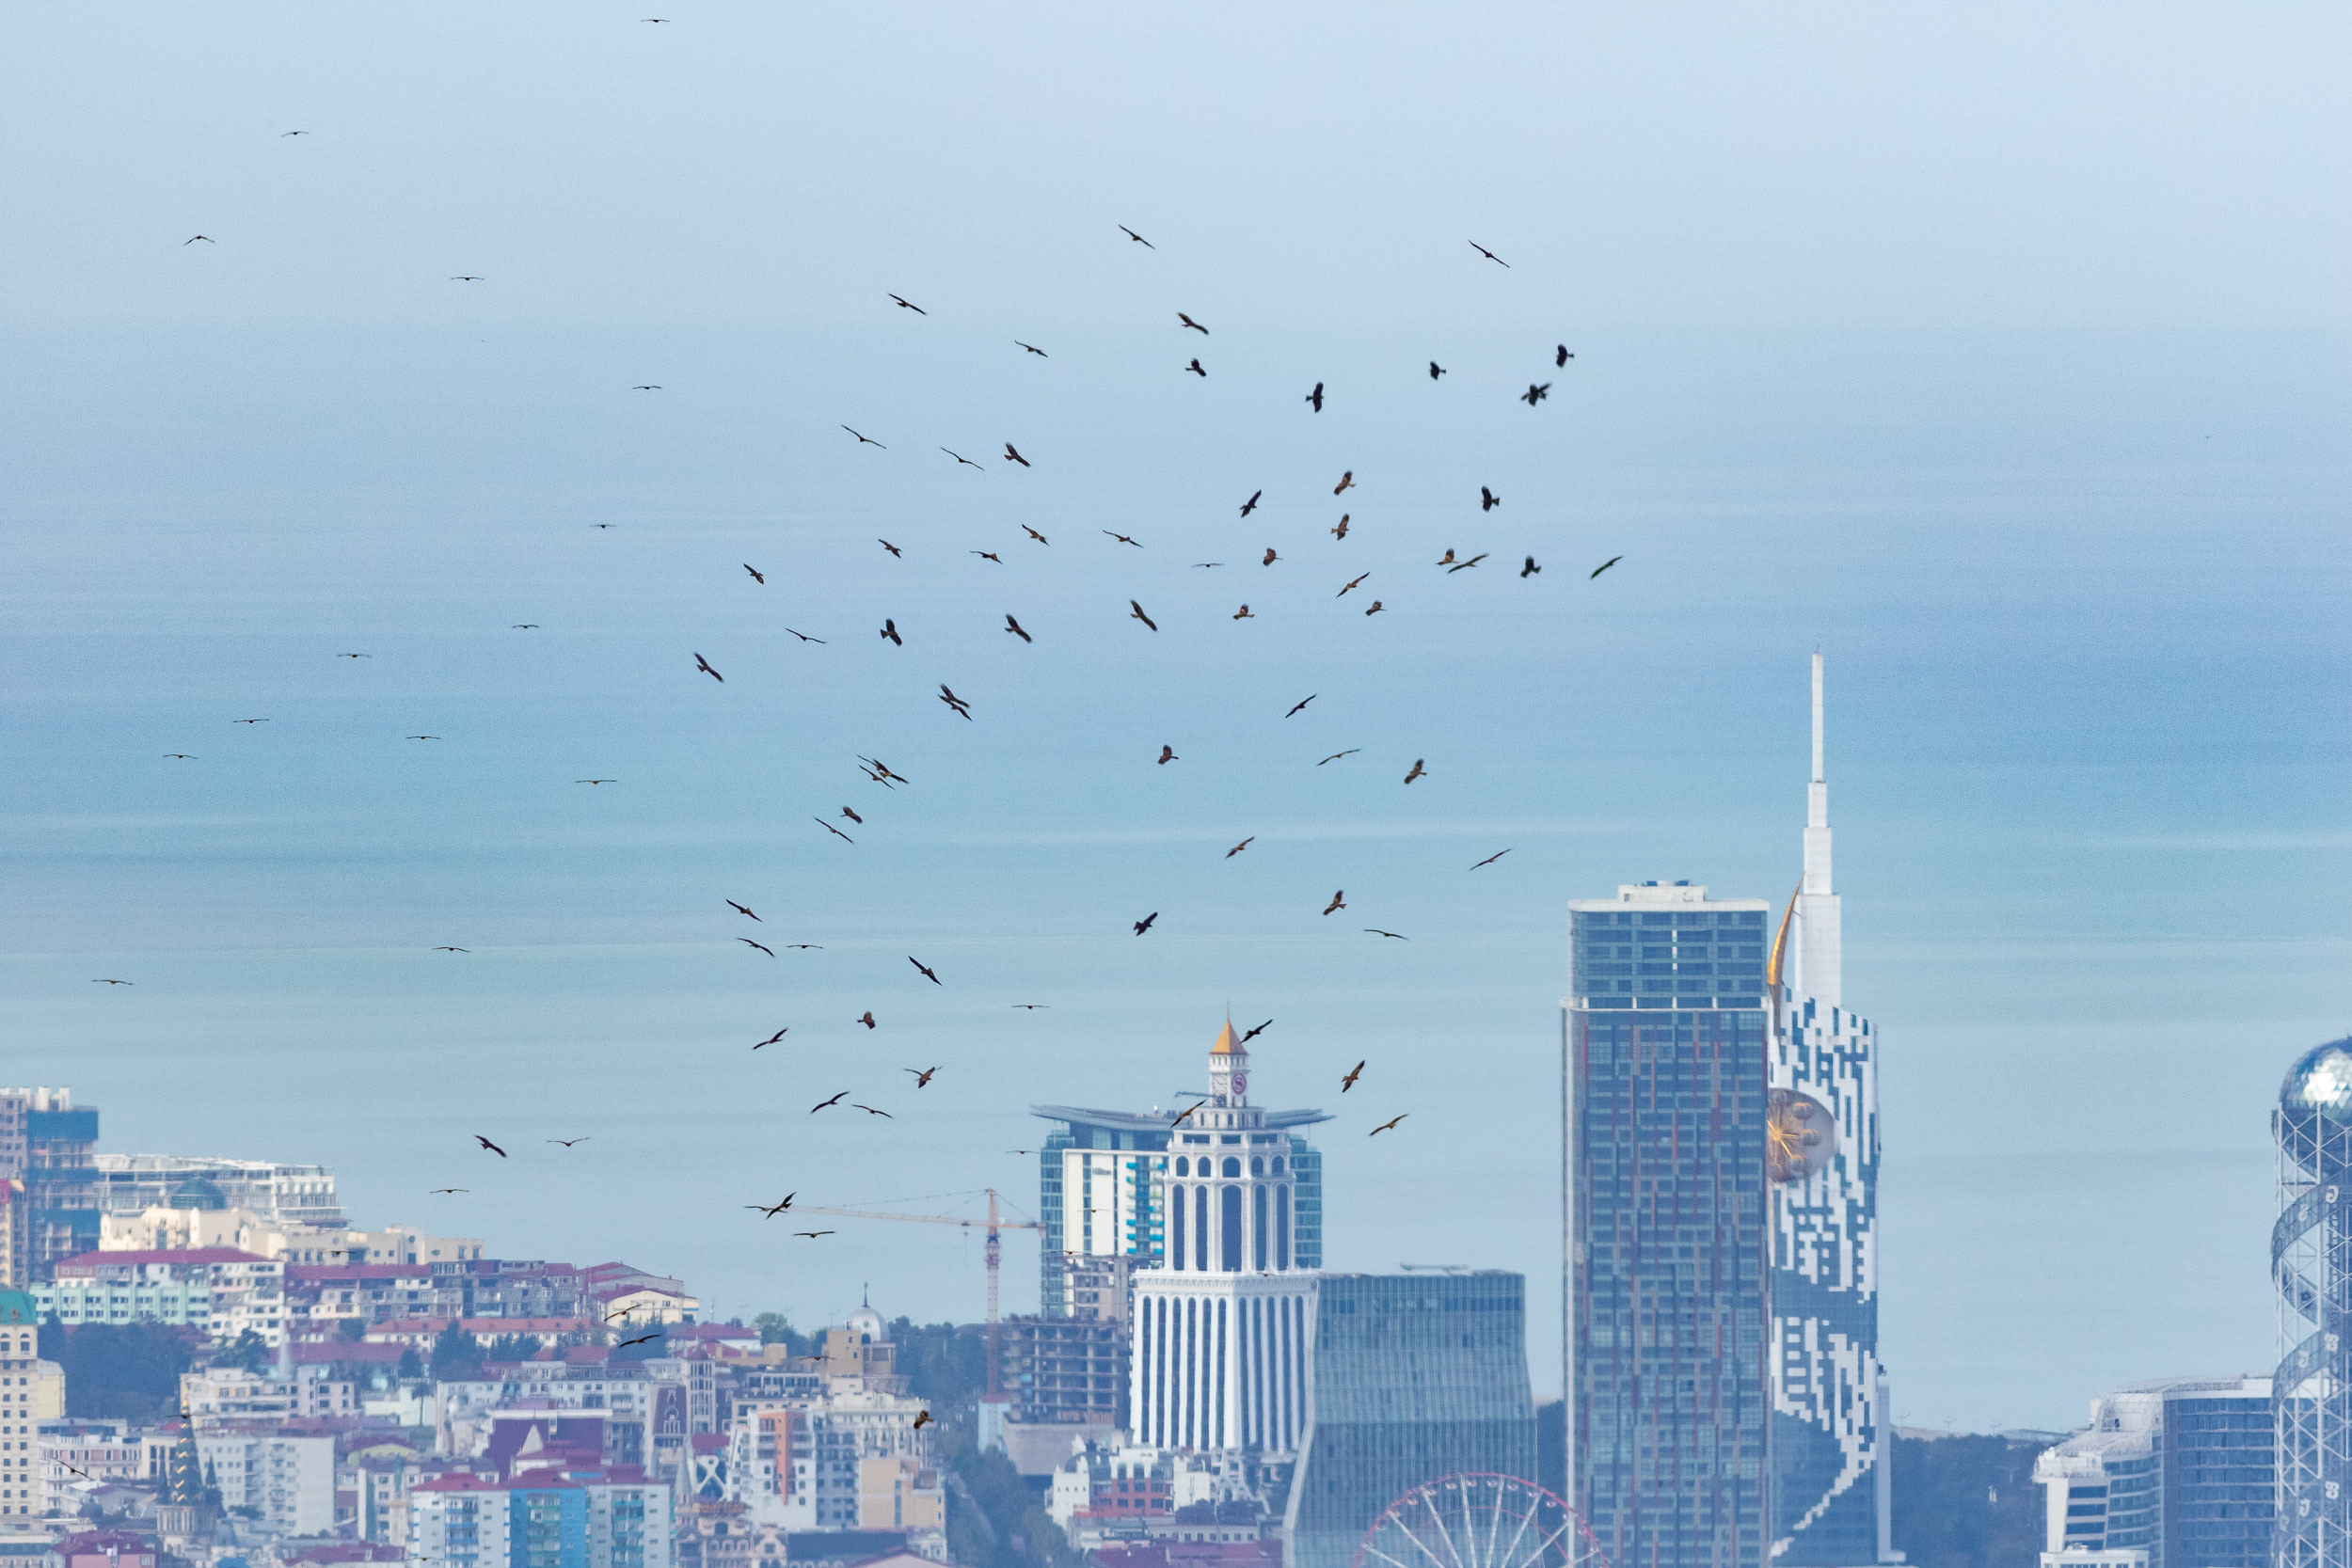 Black Kites in front of the Batumi skyline. Photo by Diego Jansen.